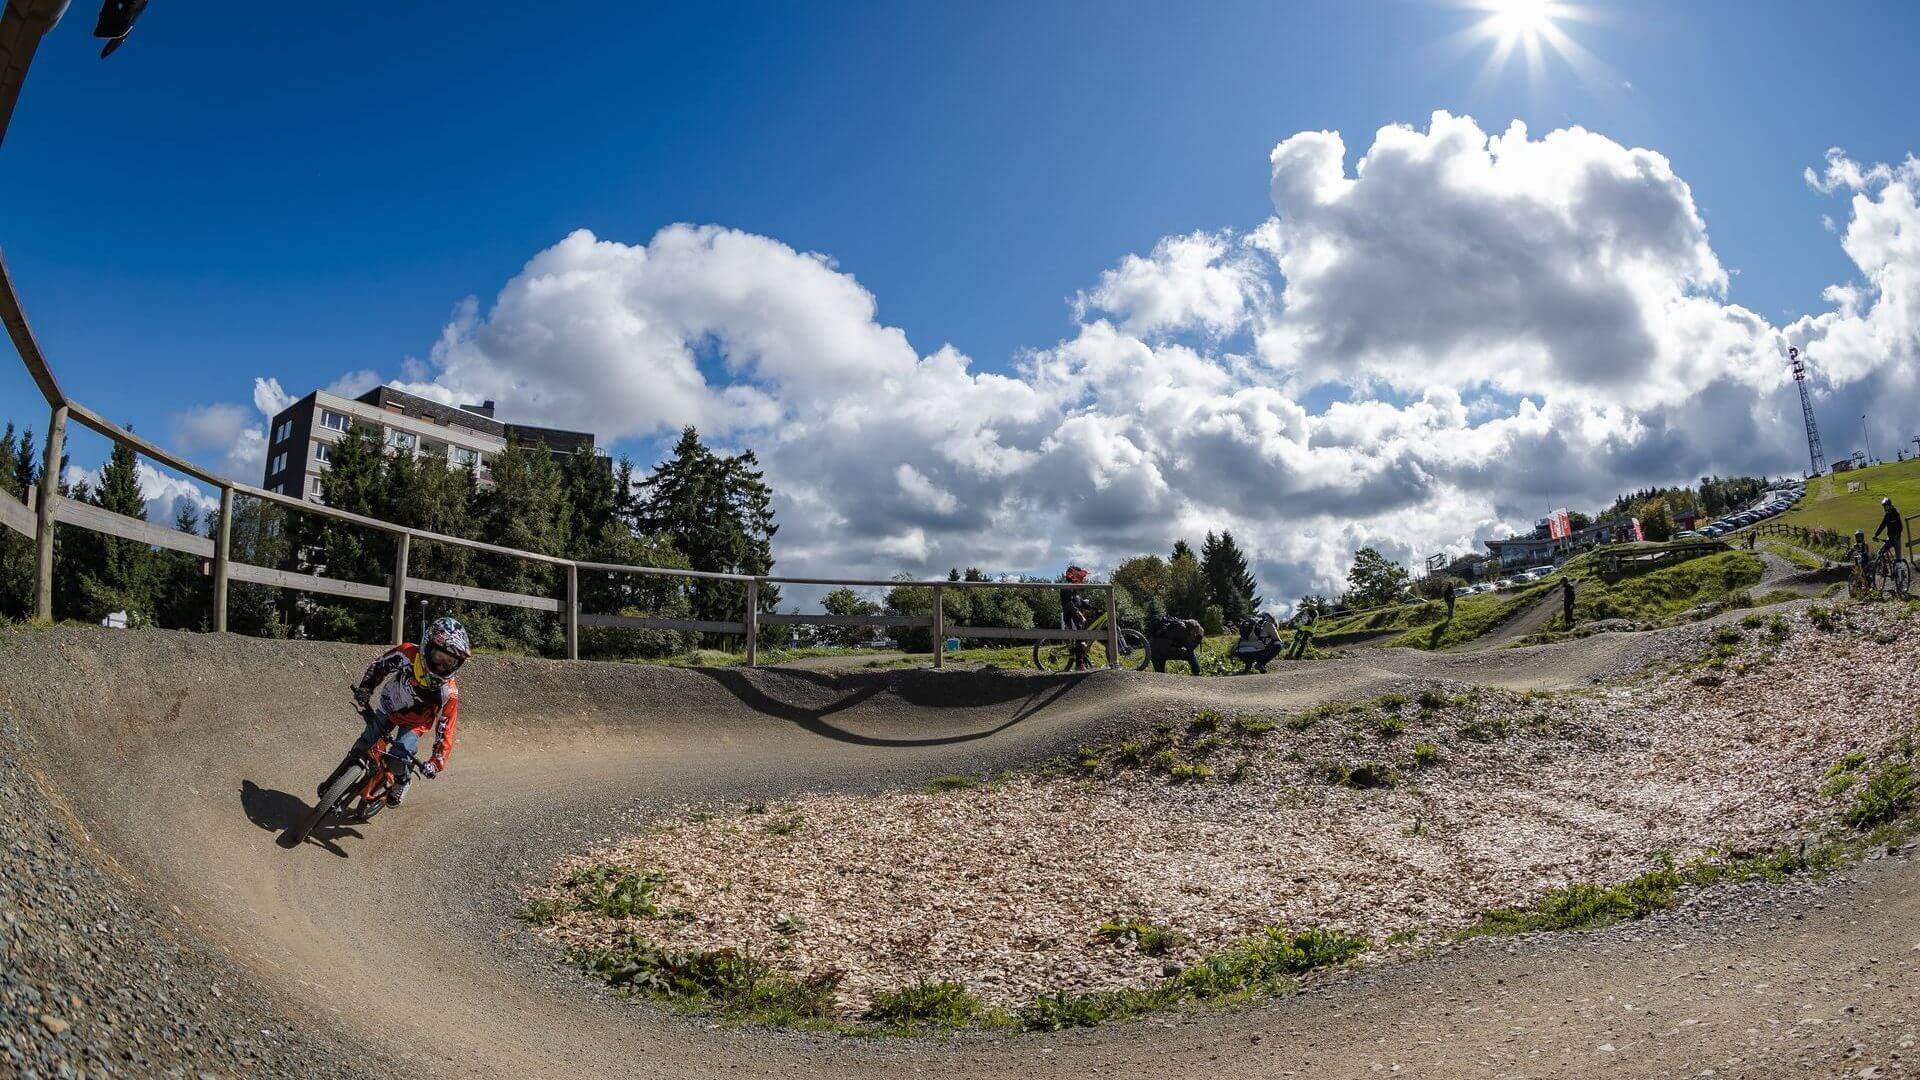 Kind im Pumptrack im Bikepark Winterberg